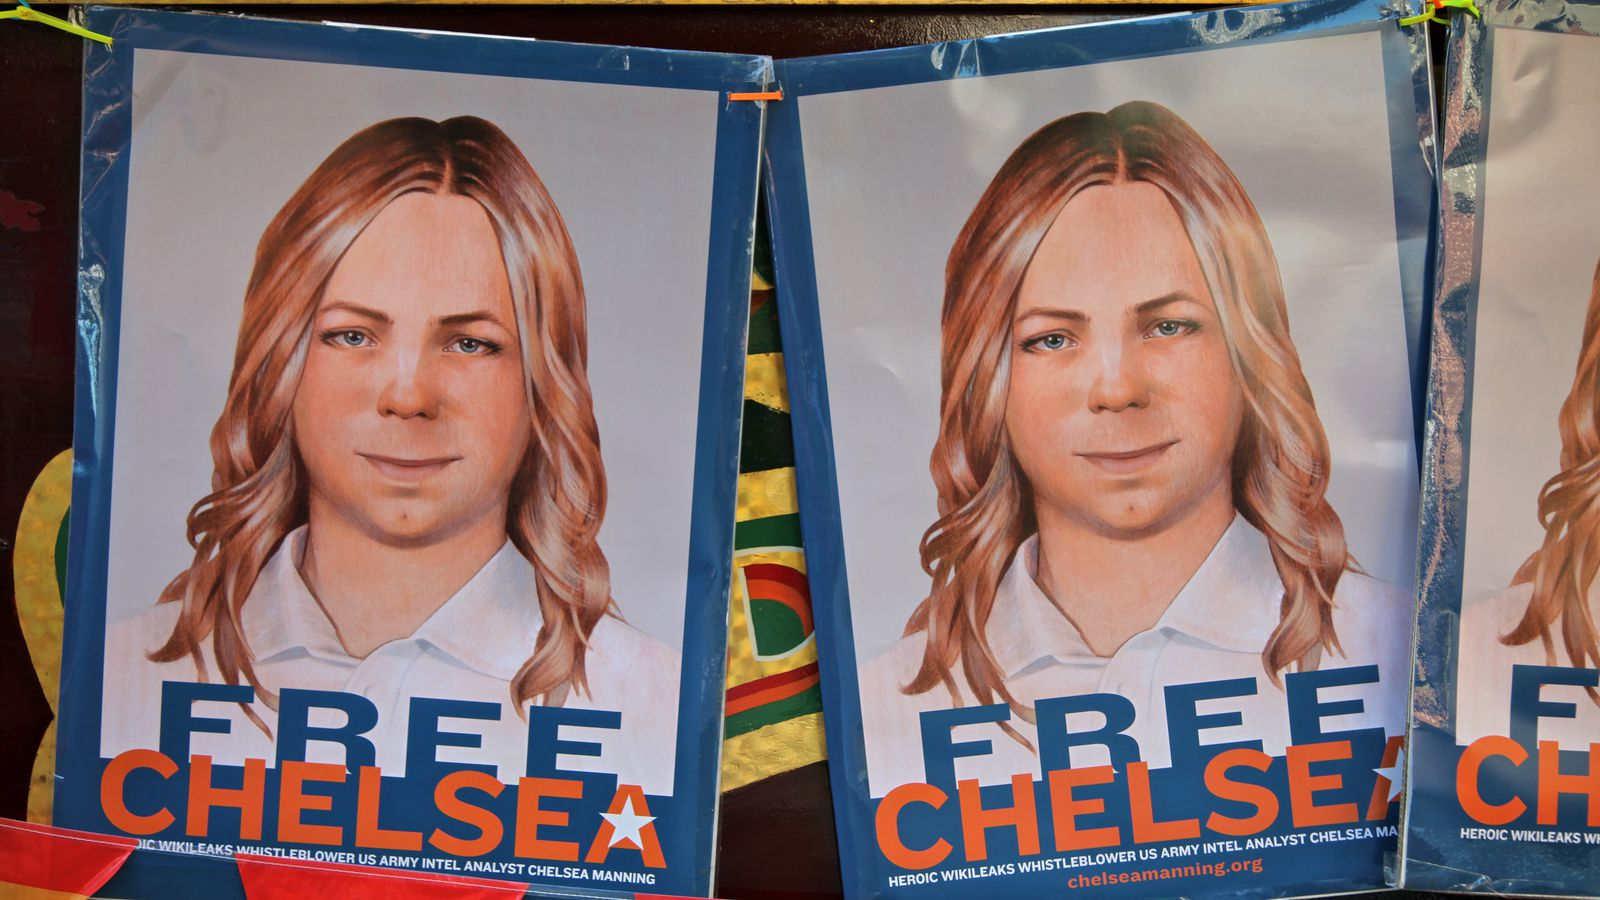 theverge.com - Russell Brandom - President Obama has commuted Chelsea Manning's sentence